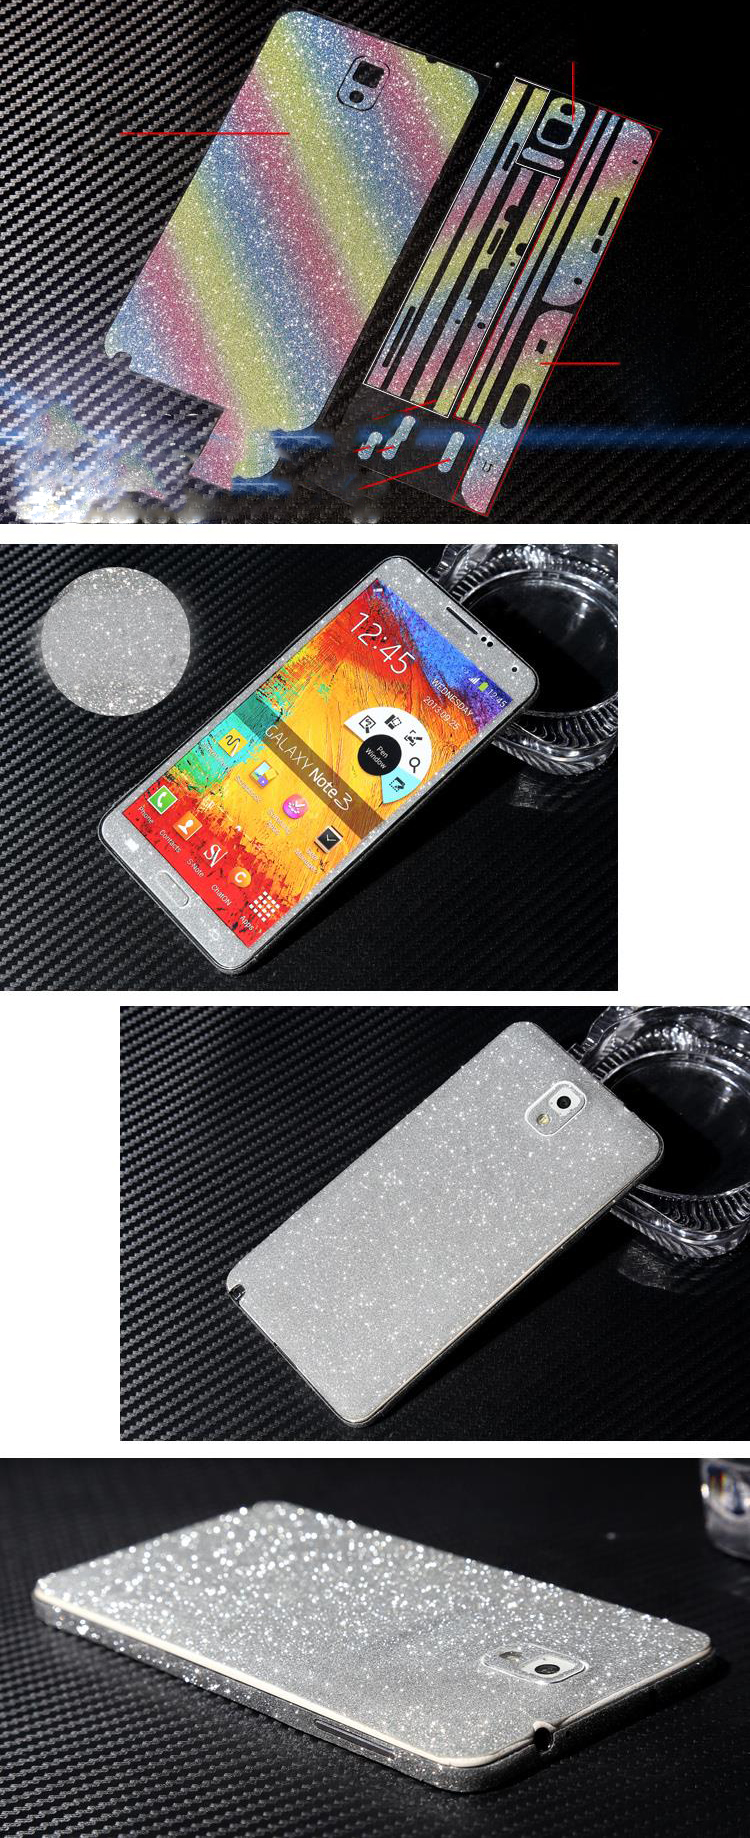 sticker-bling-samsung-galaxy-note-3 2